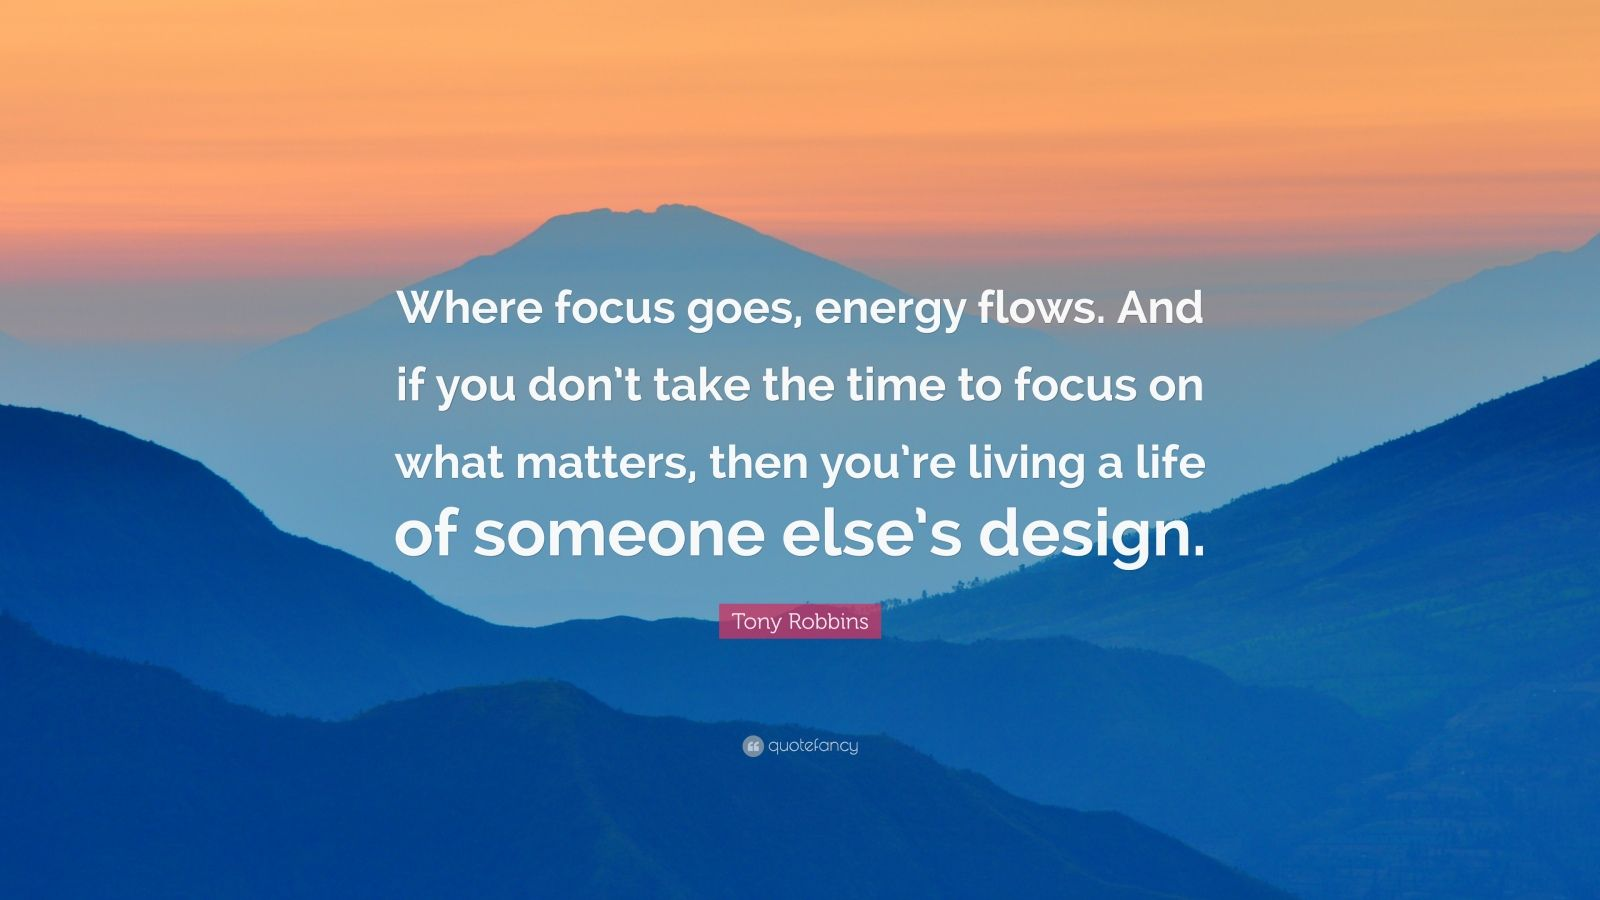 """Tony Robbins Quote: """"Where focus goes, energy flows. And if you don't take the time to focus on what matters, then you're living a life of someone else's design."""""""